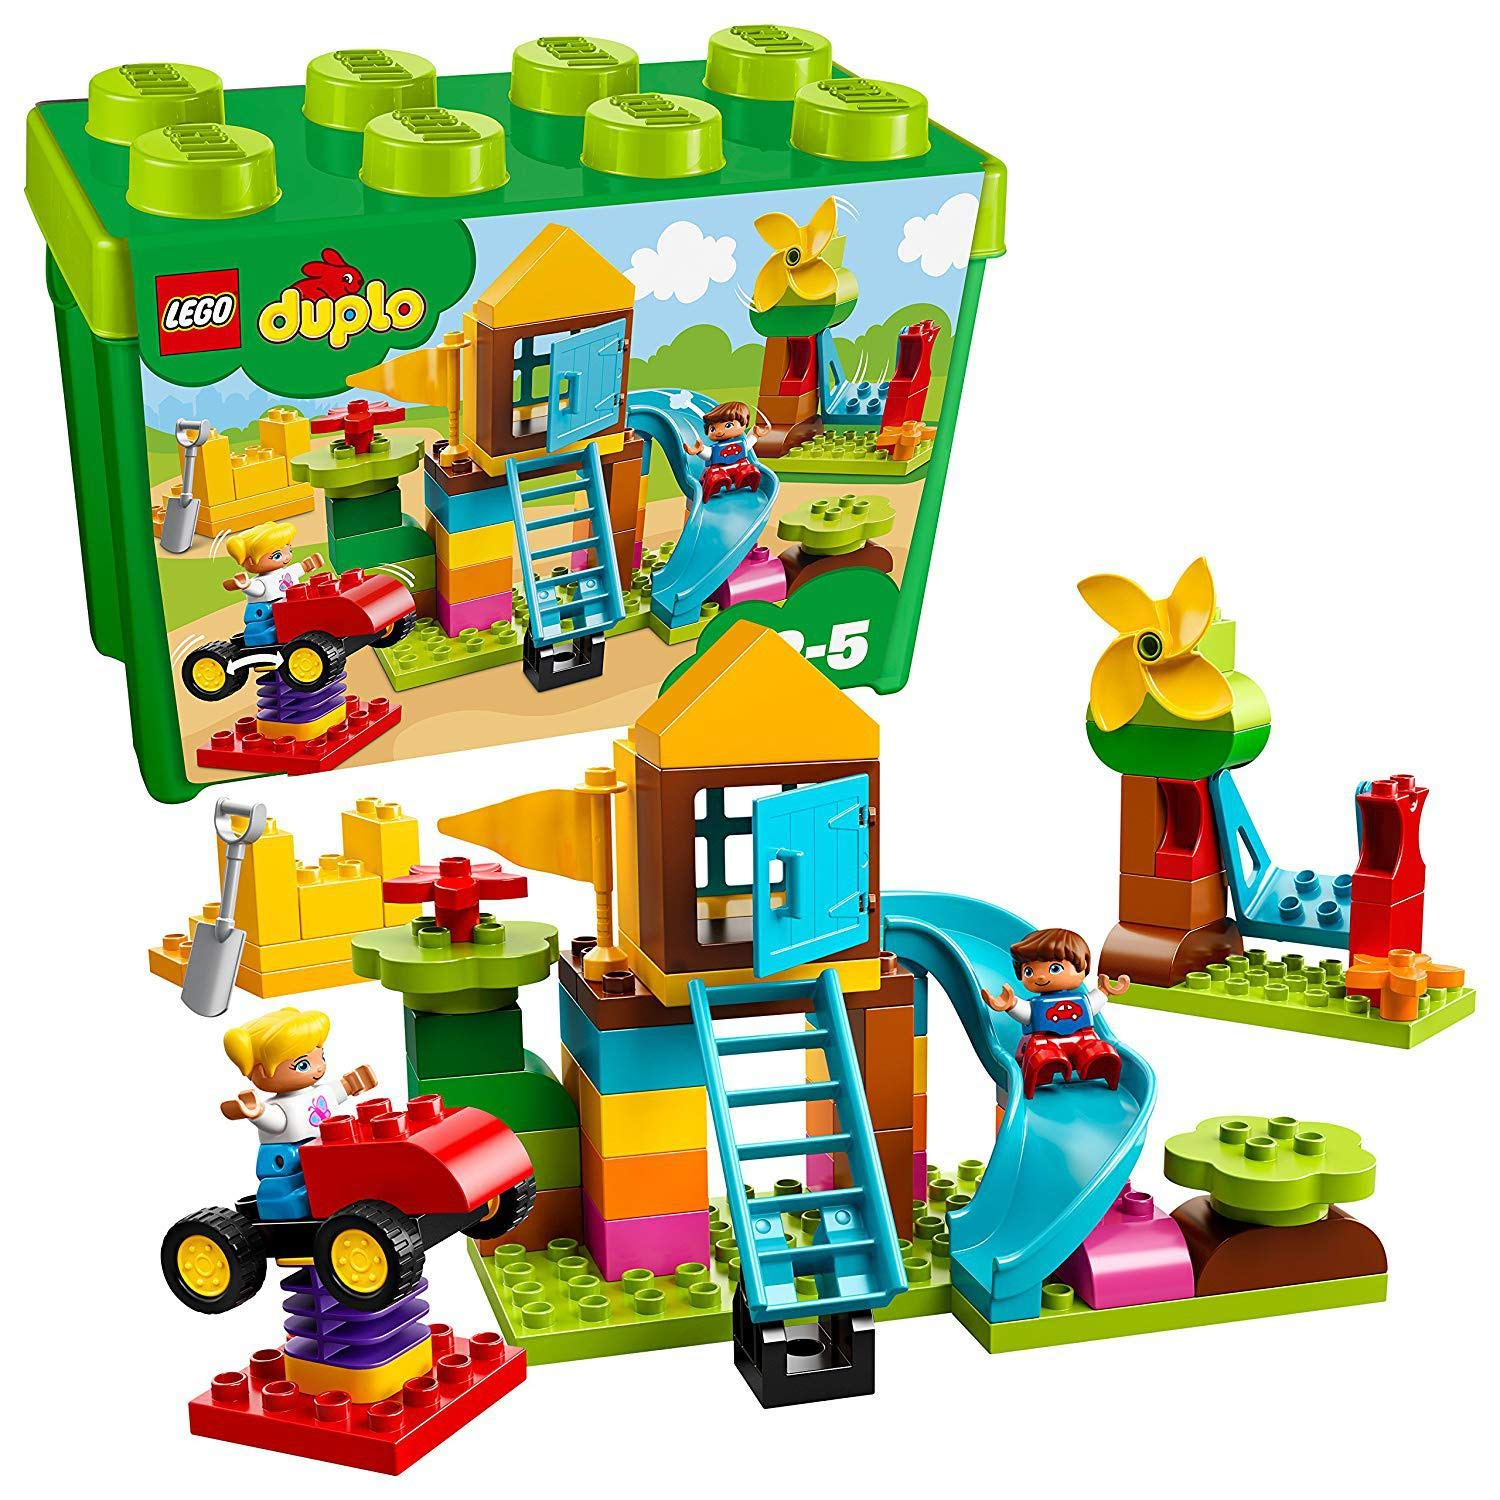 Half Price LEGO 10864 DUPLO My First Large Playground Brick Box